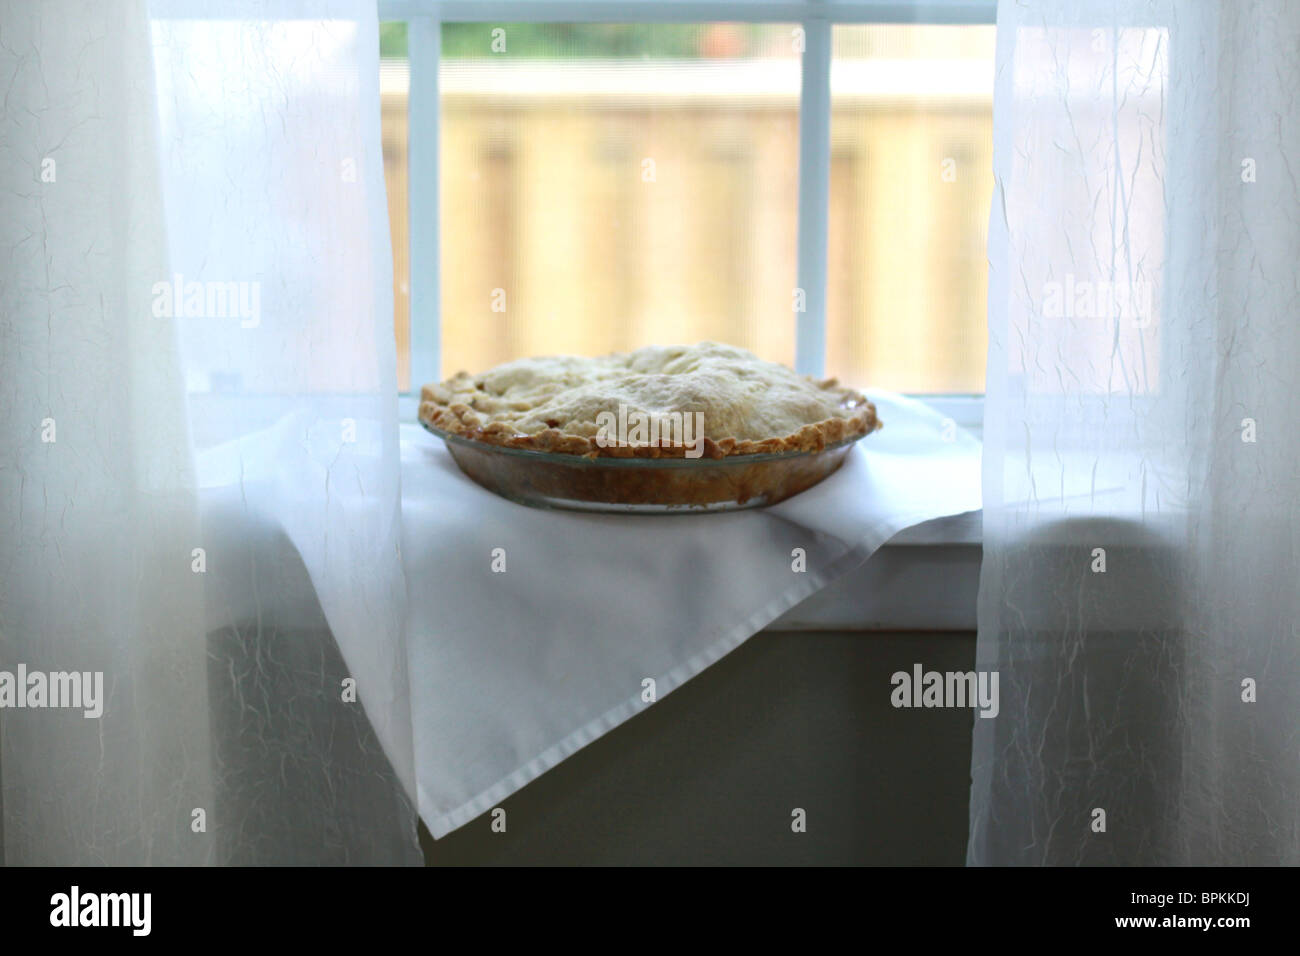 An Apple Pie Cooling On A Window Sill